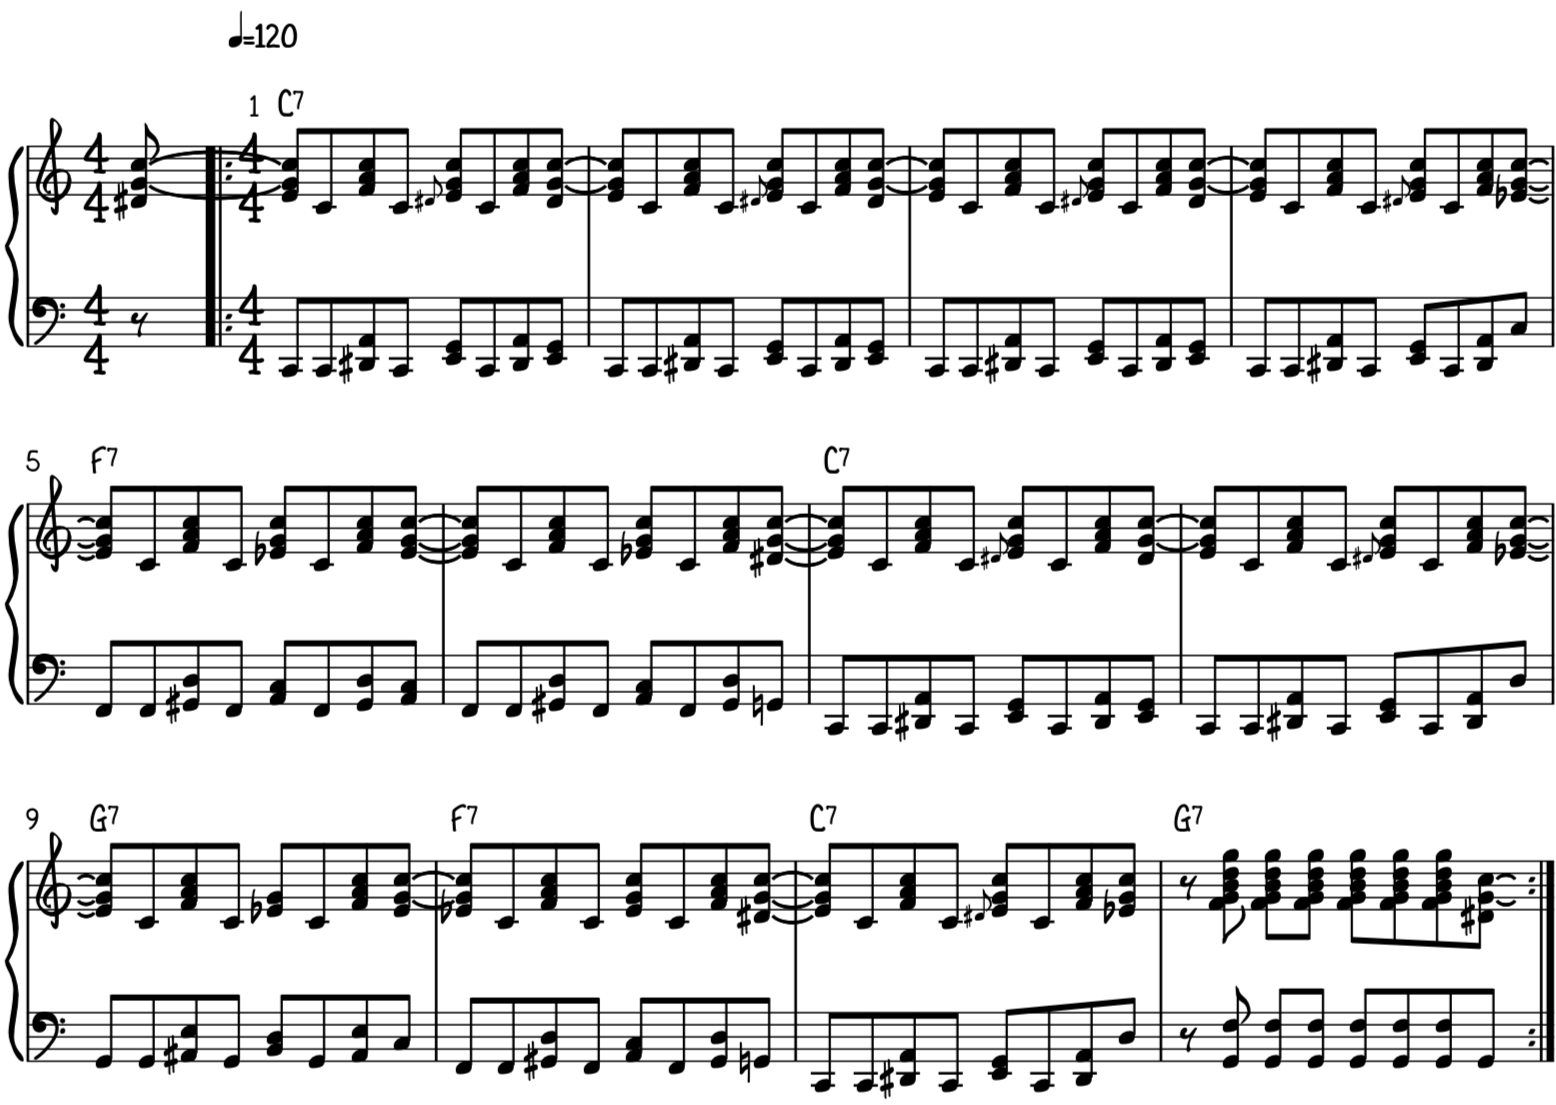 Both hands together on the rock and roll chords and accompaniment riff for piano